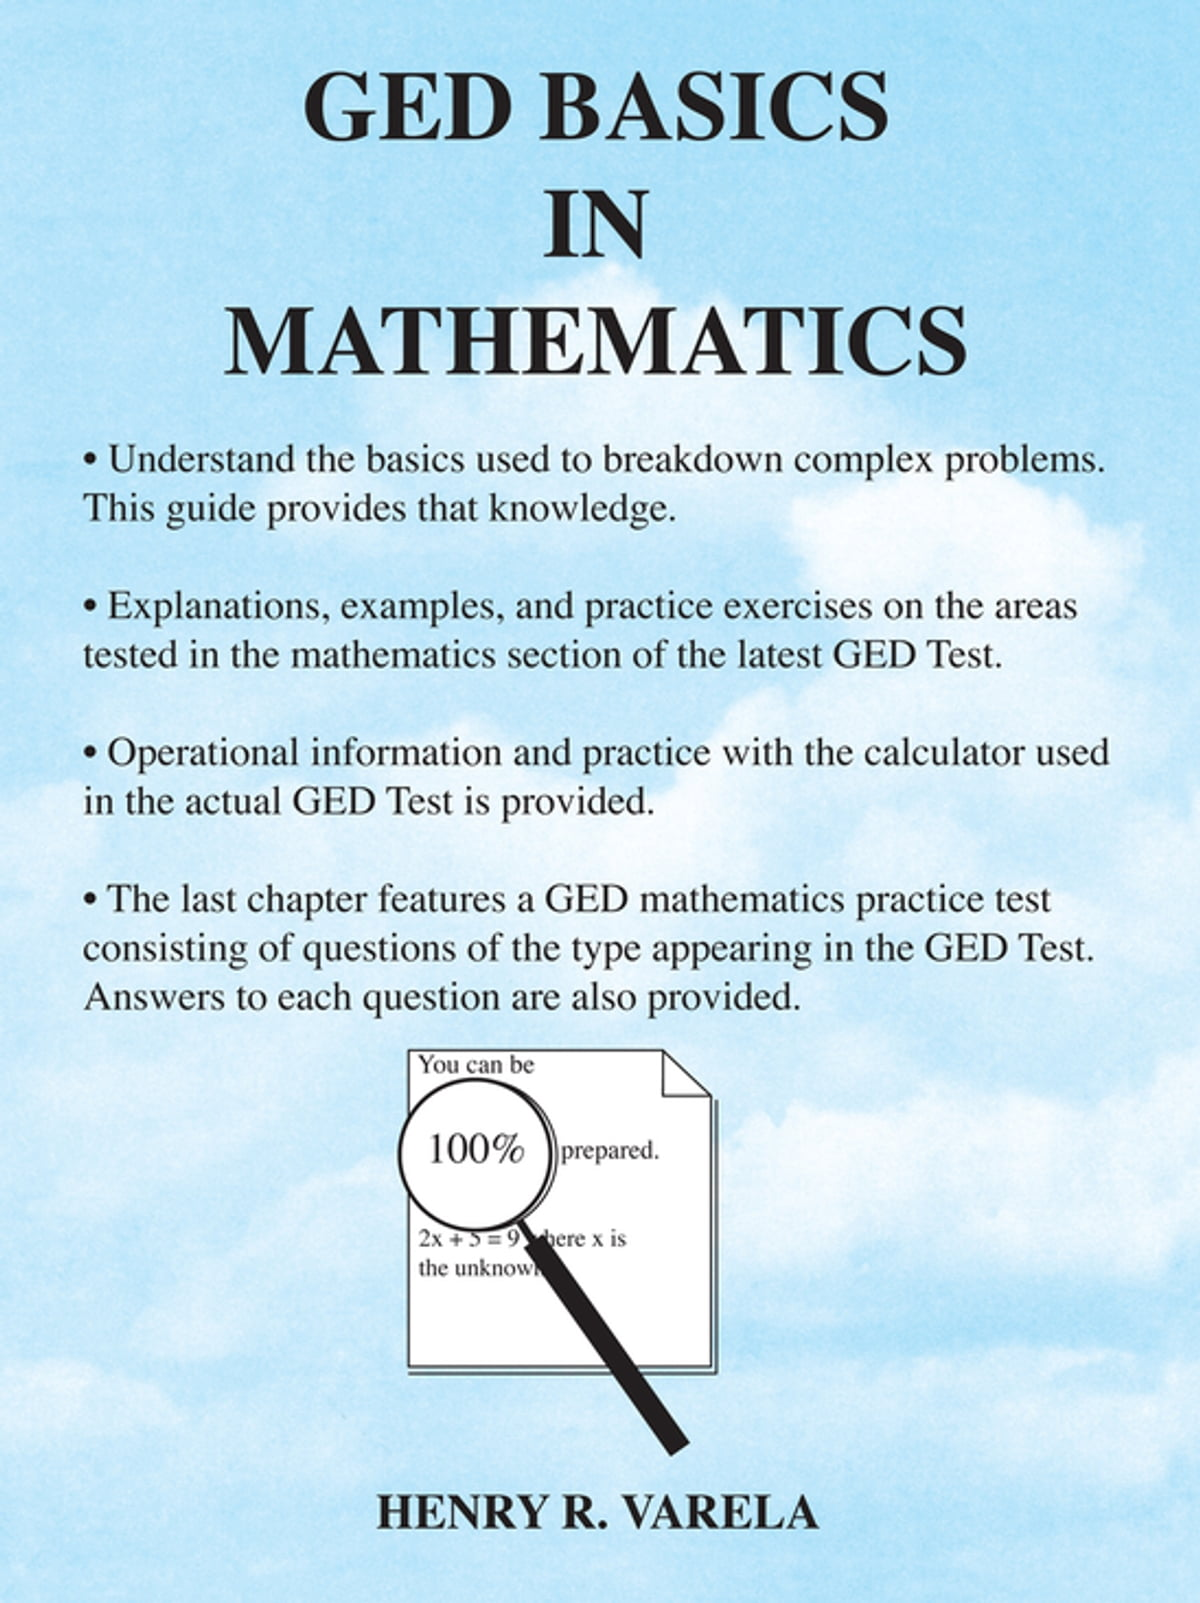 Ged Basics in Mathematics eBook by Henry Varela - 9781466948983 ...